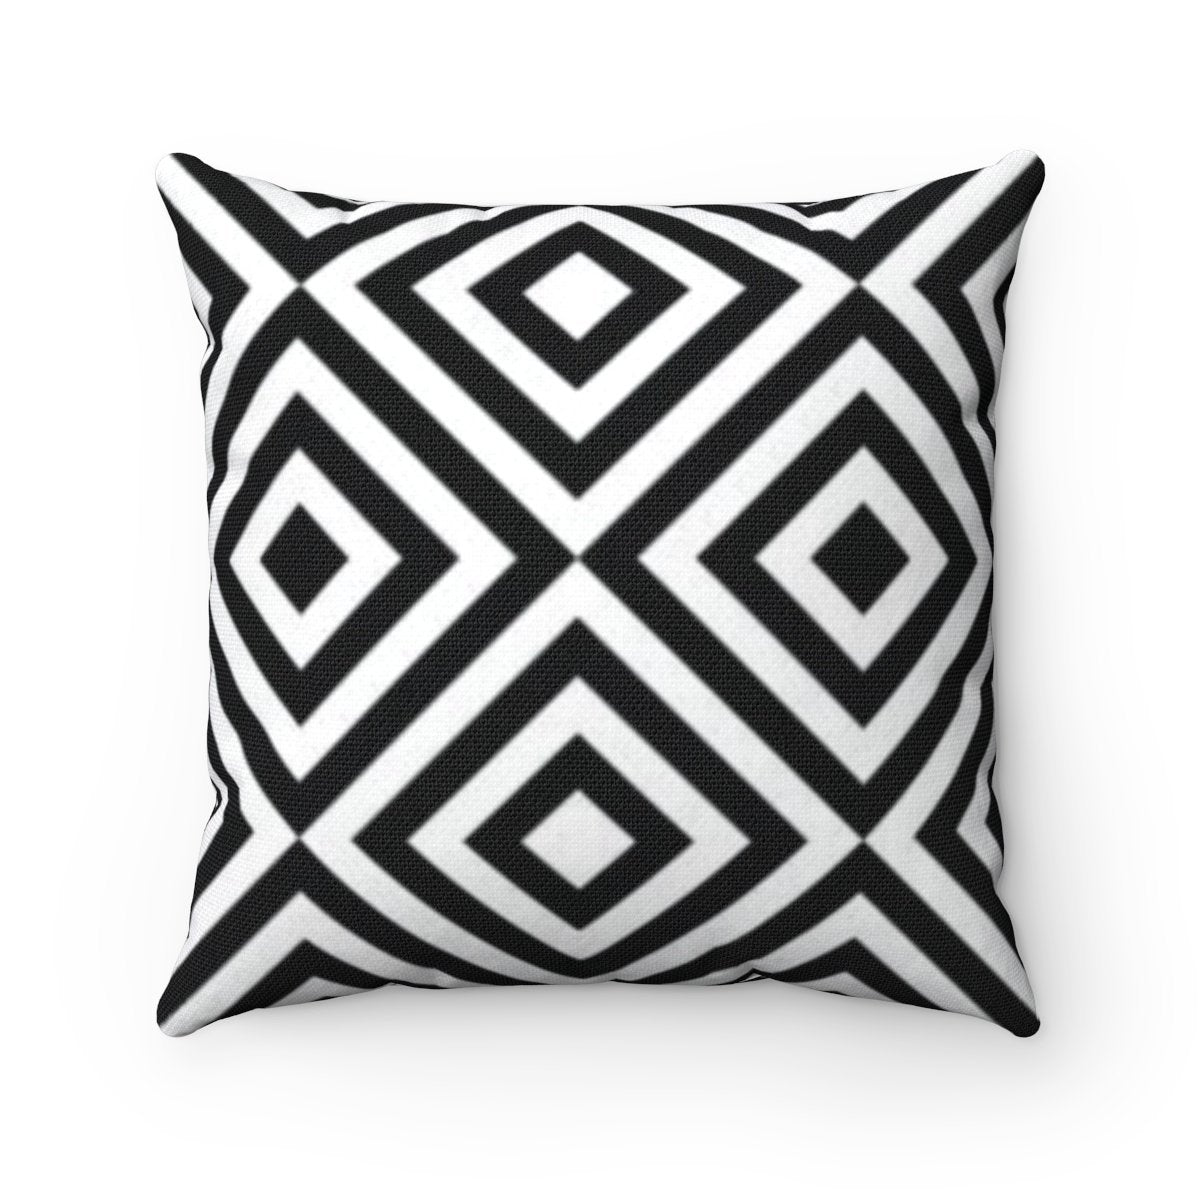 Luxury | snake | tropical | jungle abstract decorative cushion cover-Home Decor-Maison d'Elite-Très Elite